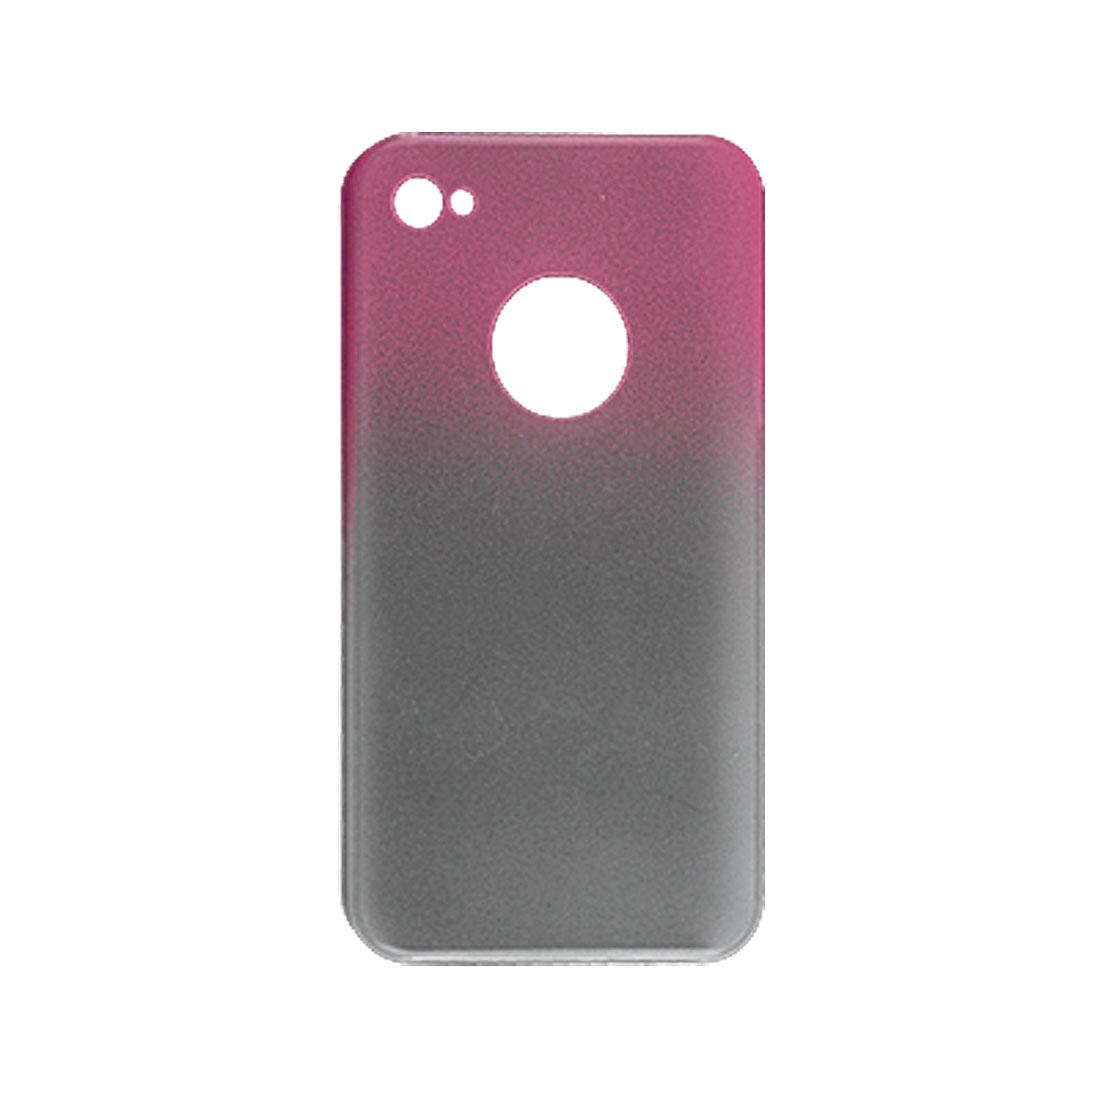 Gradient Color Hard Plastic Back Case for Apple iPhone 4 4G